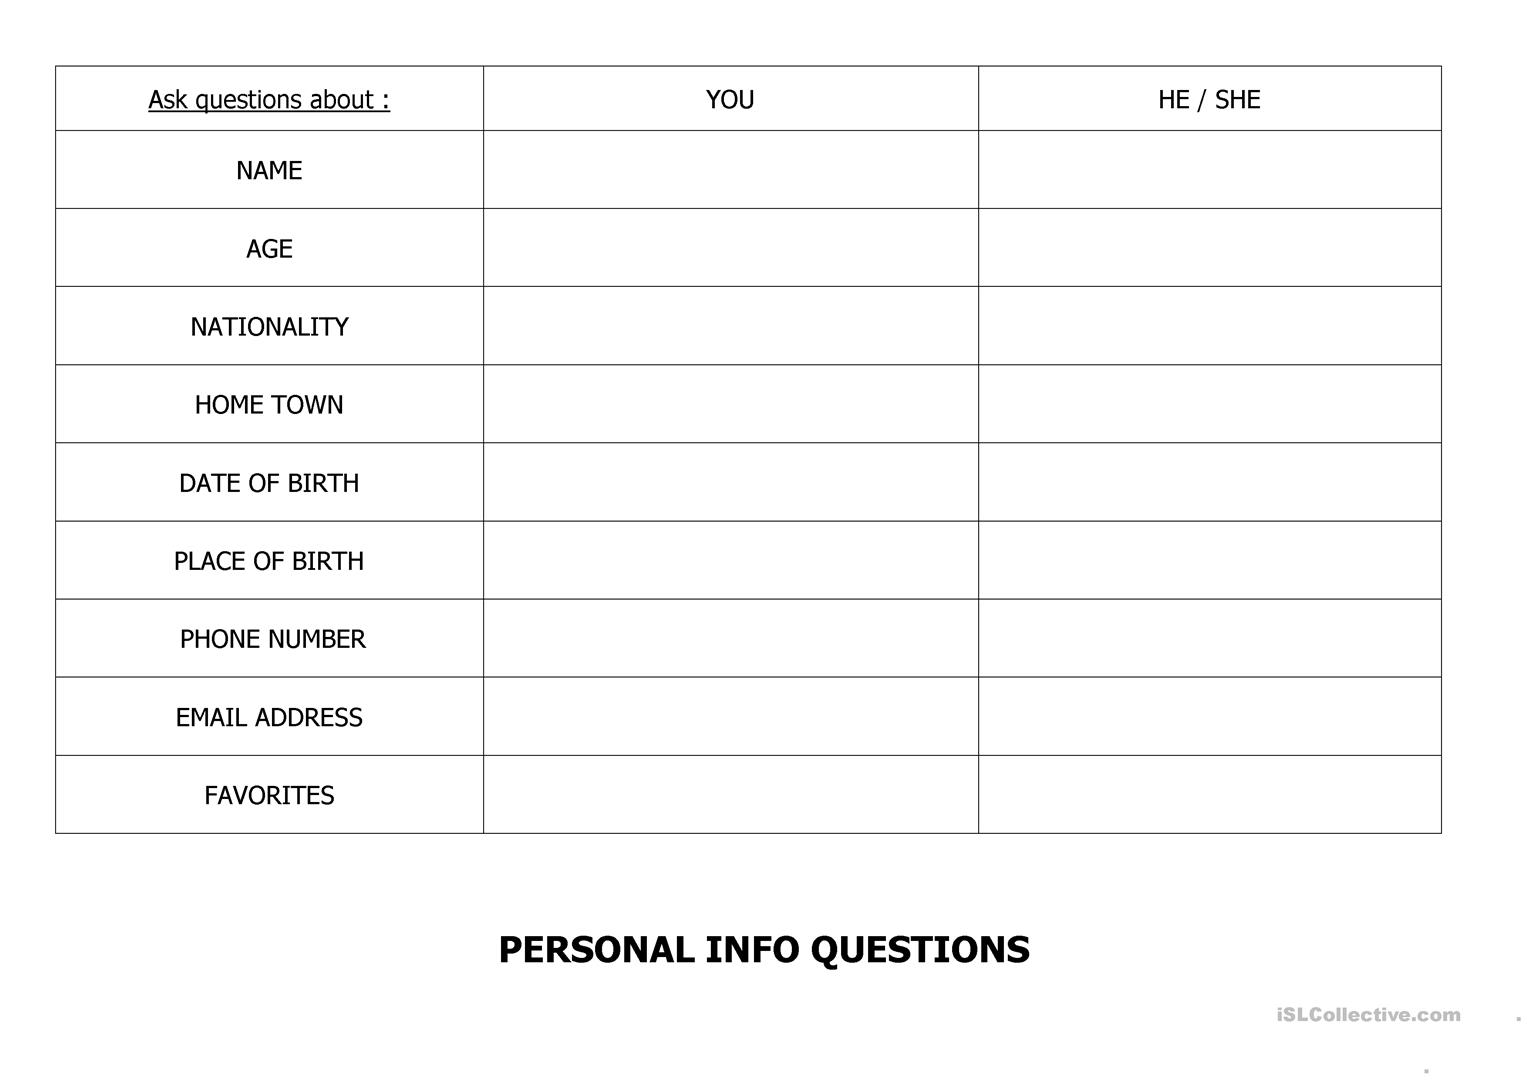 Personal Info Questions